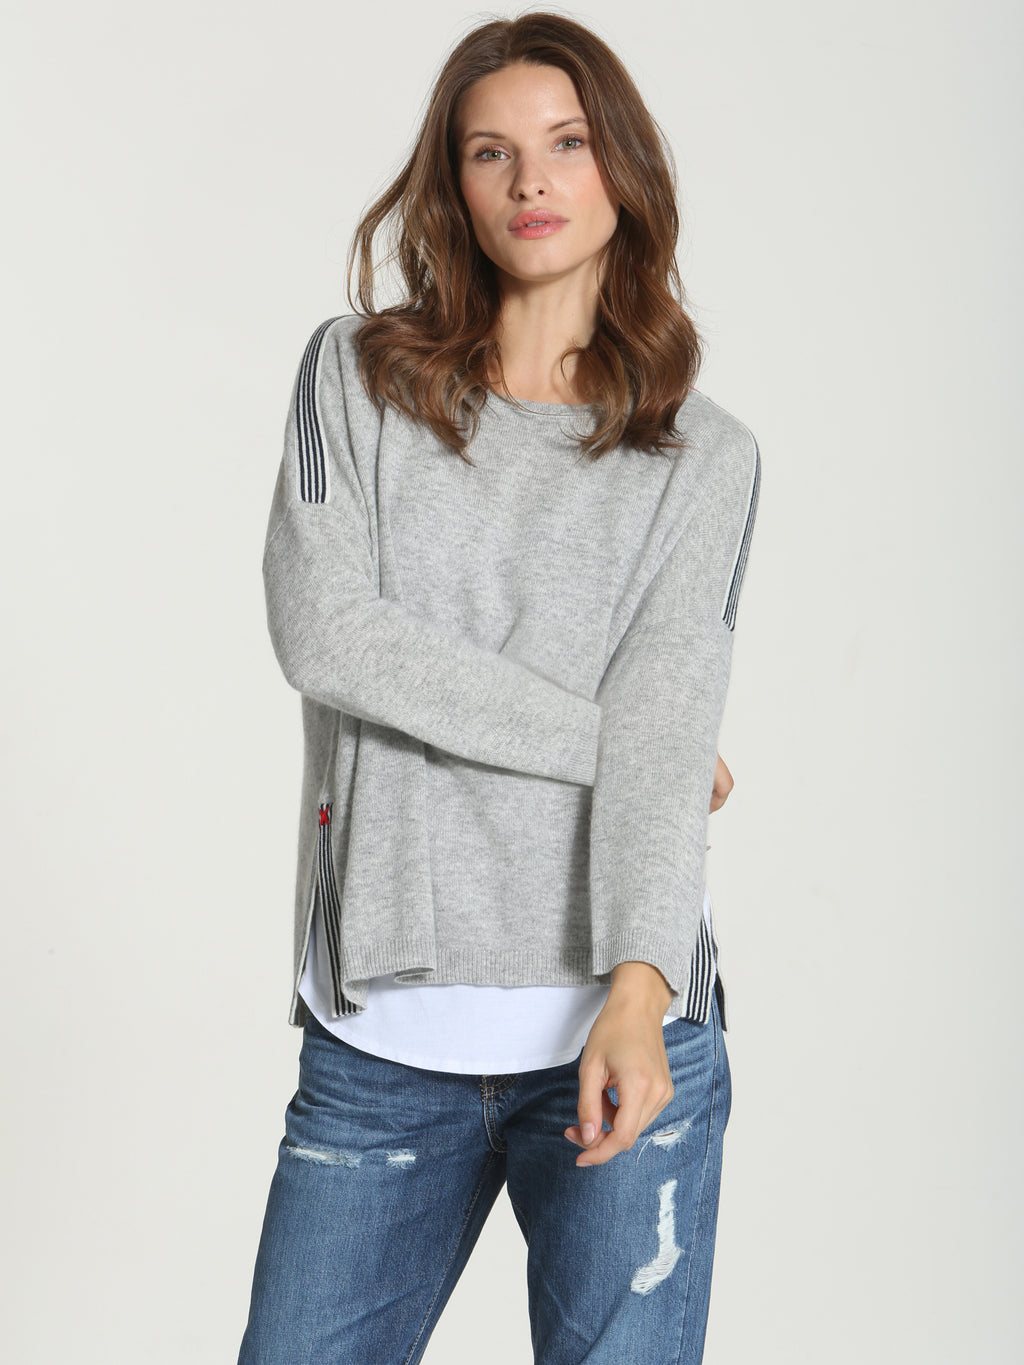 Luxe Vineyard Crew - Grey